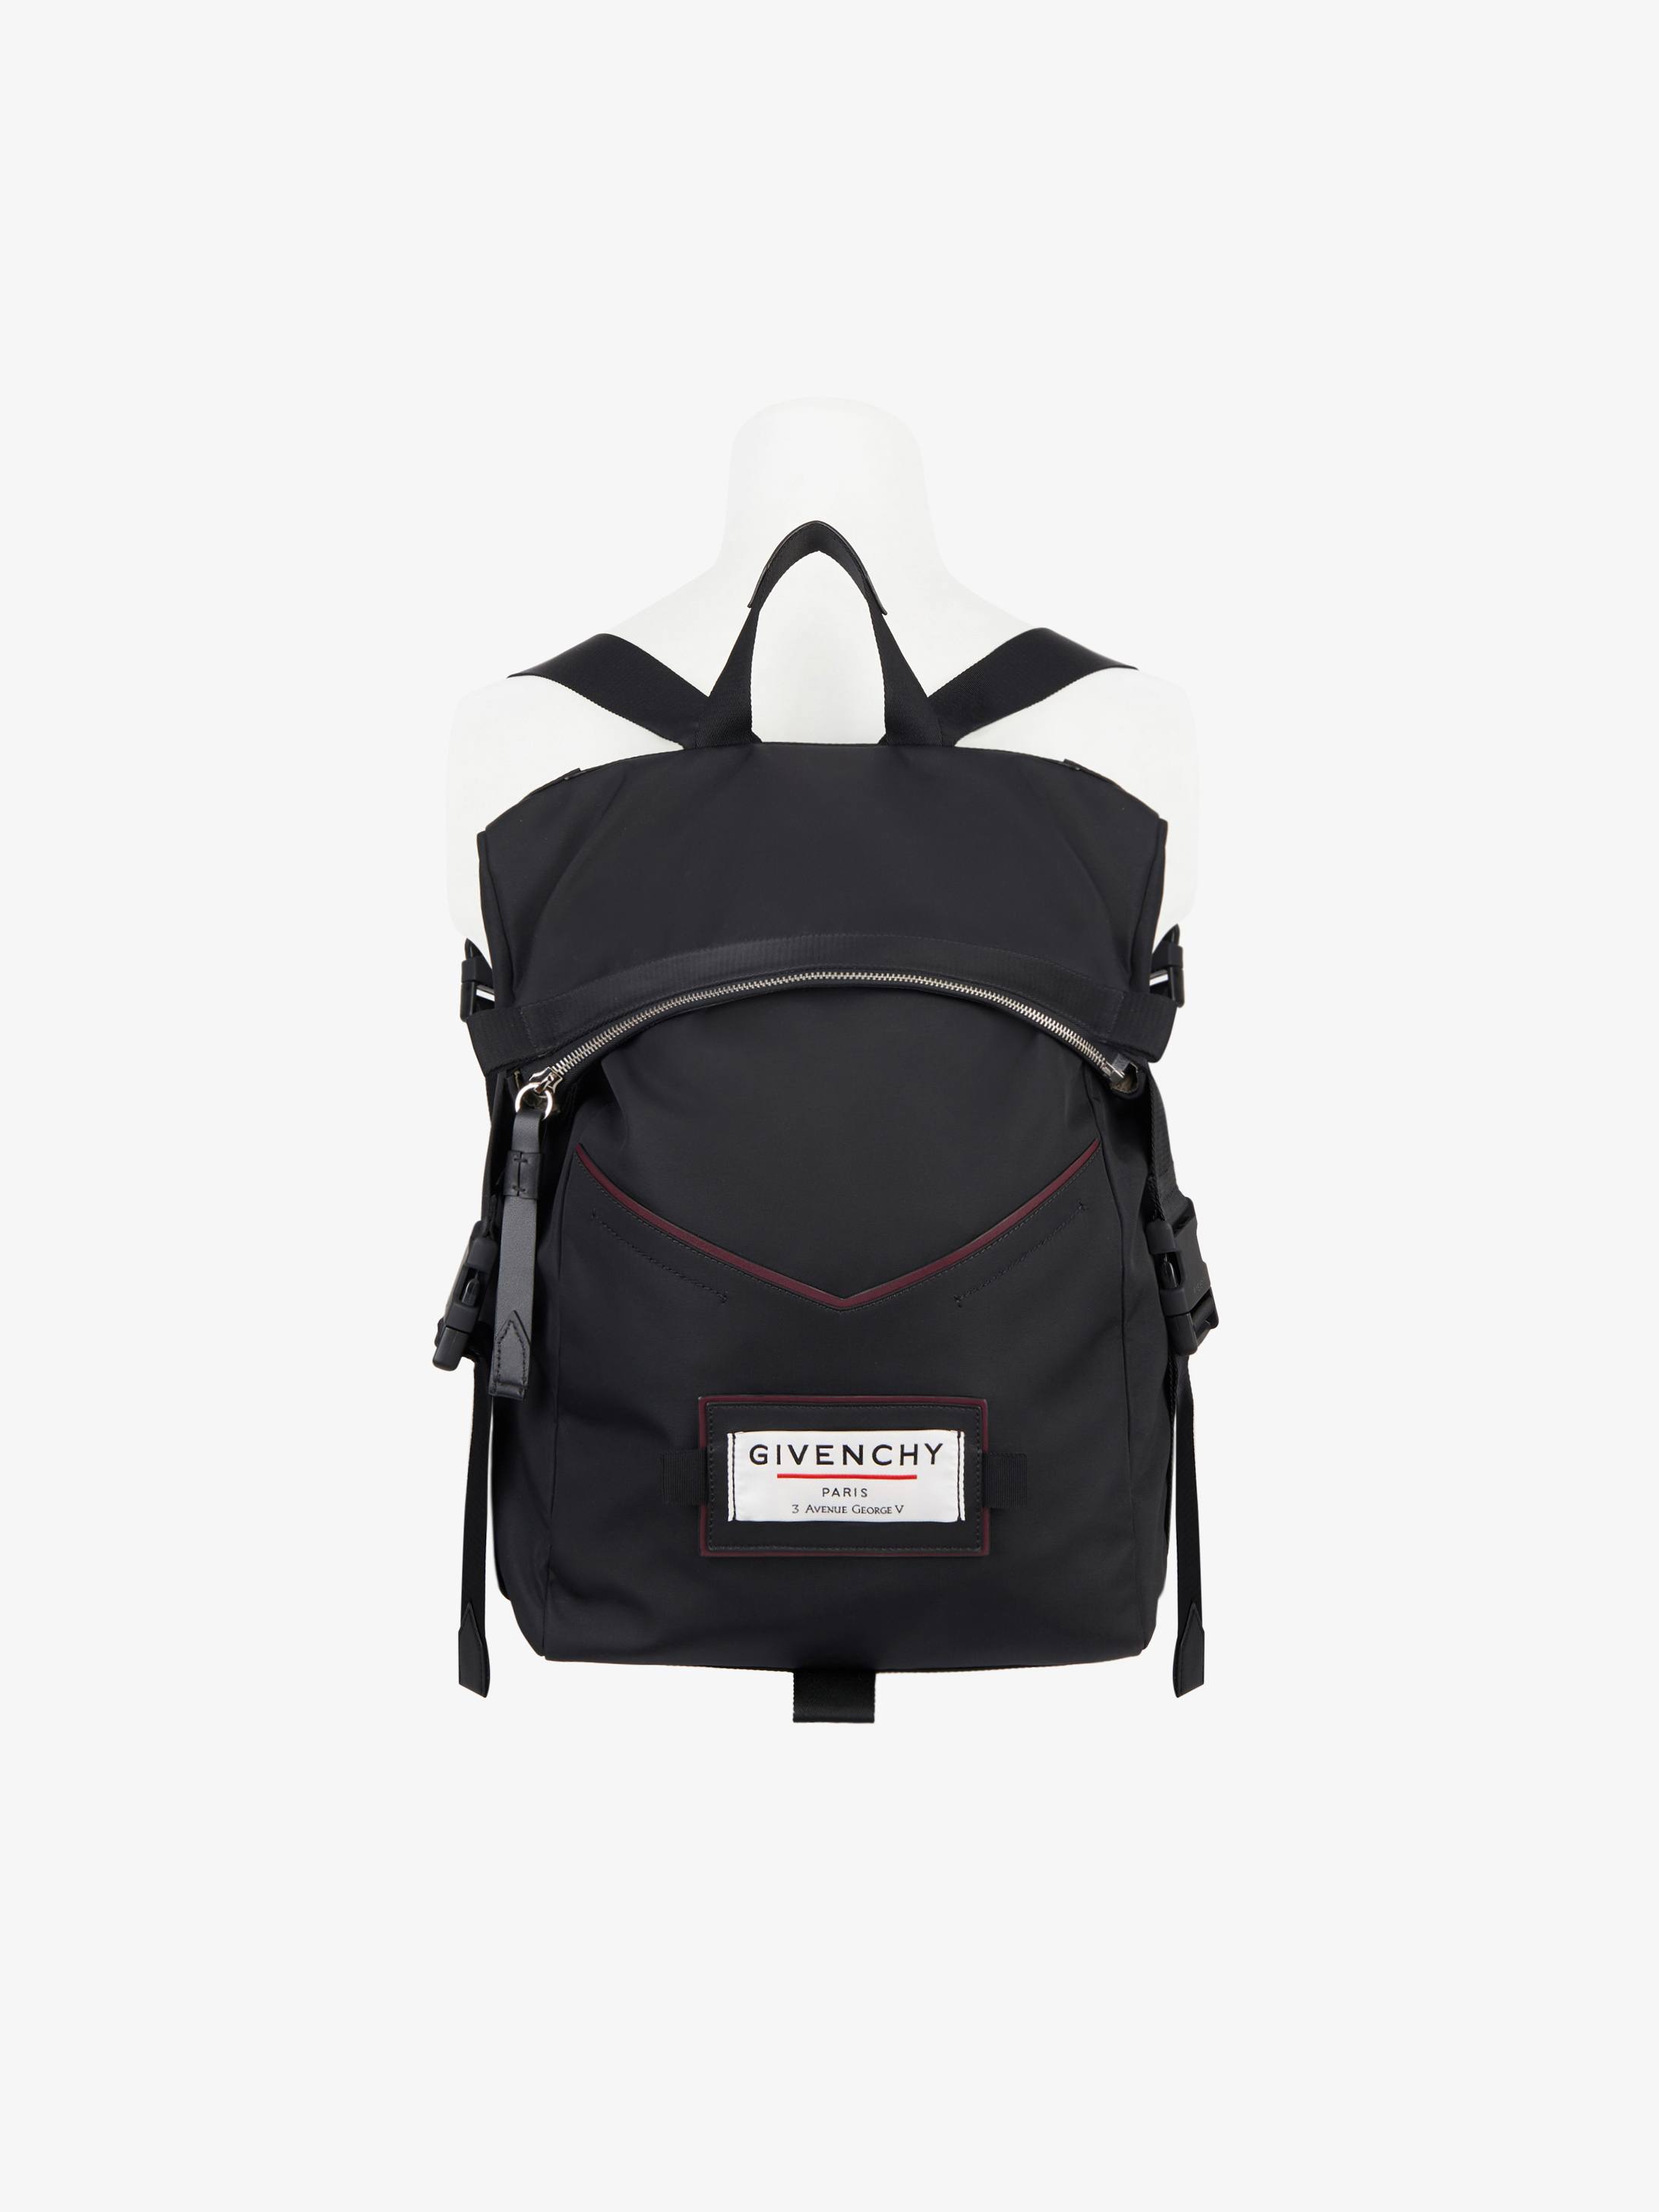 GIVENCHY Downtown nylon backpack